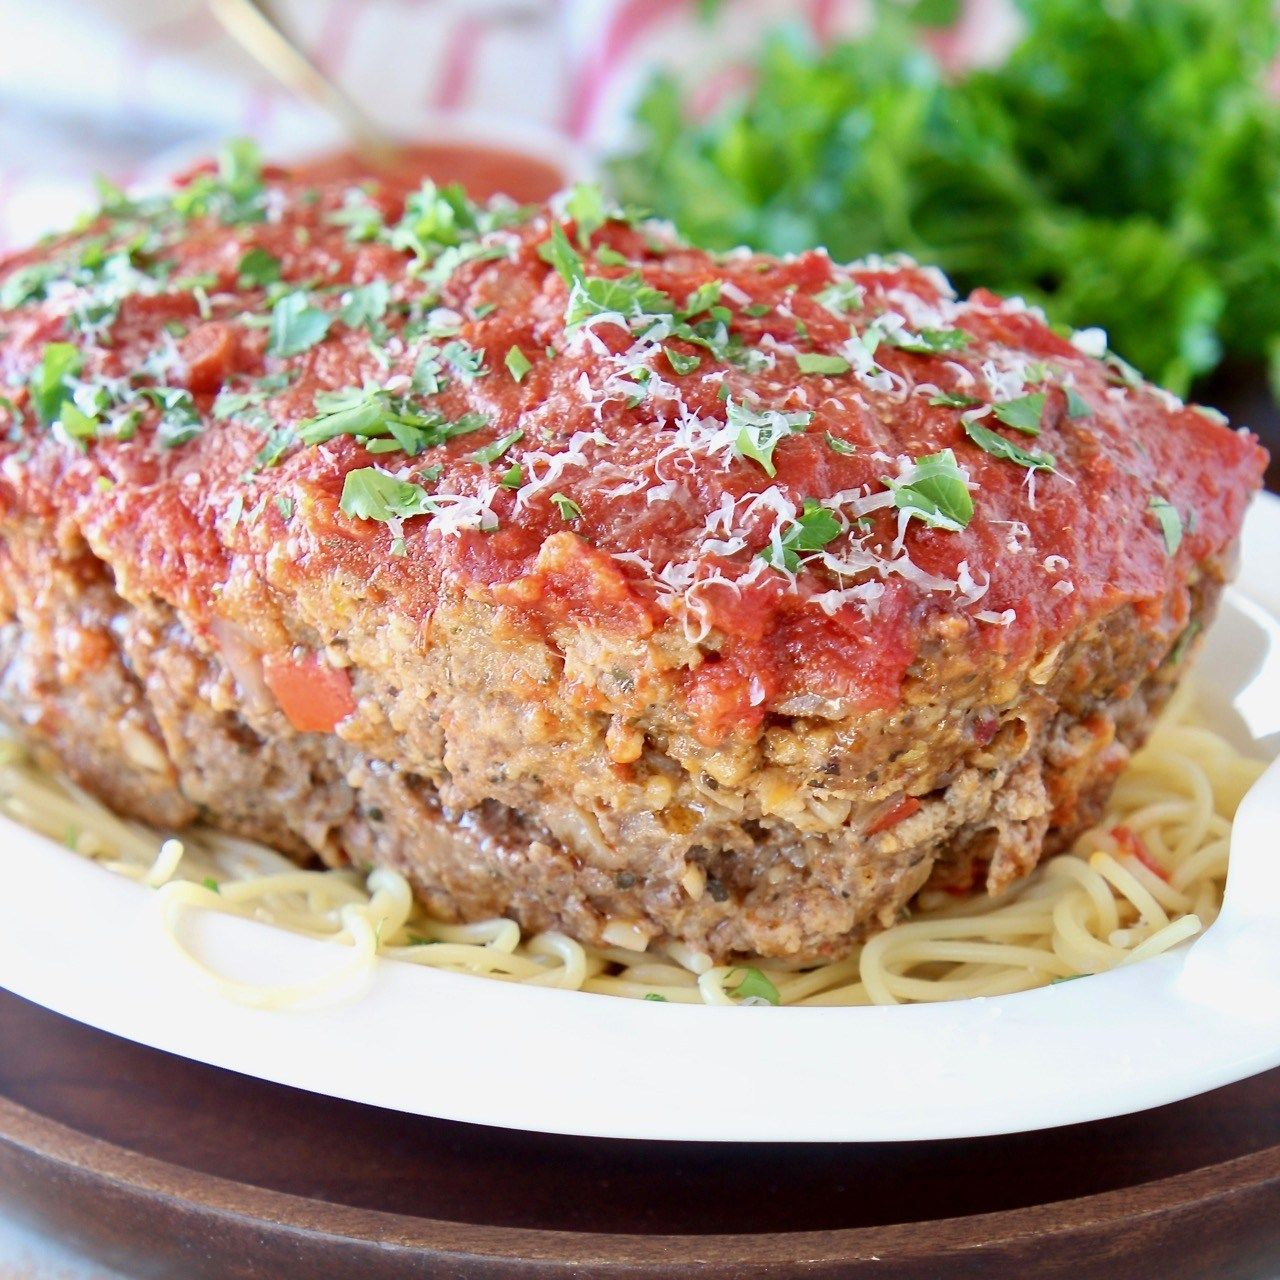 Italian Sausage And Ground Beef Are Combined With Italian Herbs Parmesan Ricotta Cheese In The Best Italia Italian Meatloaf Meatloaf Quick Meatloaf Recipes